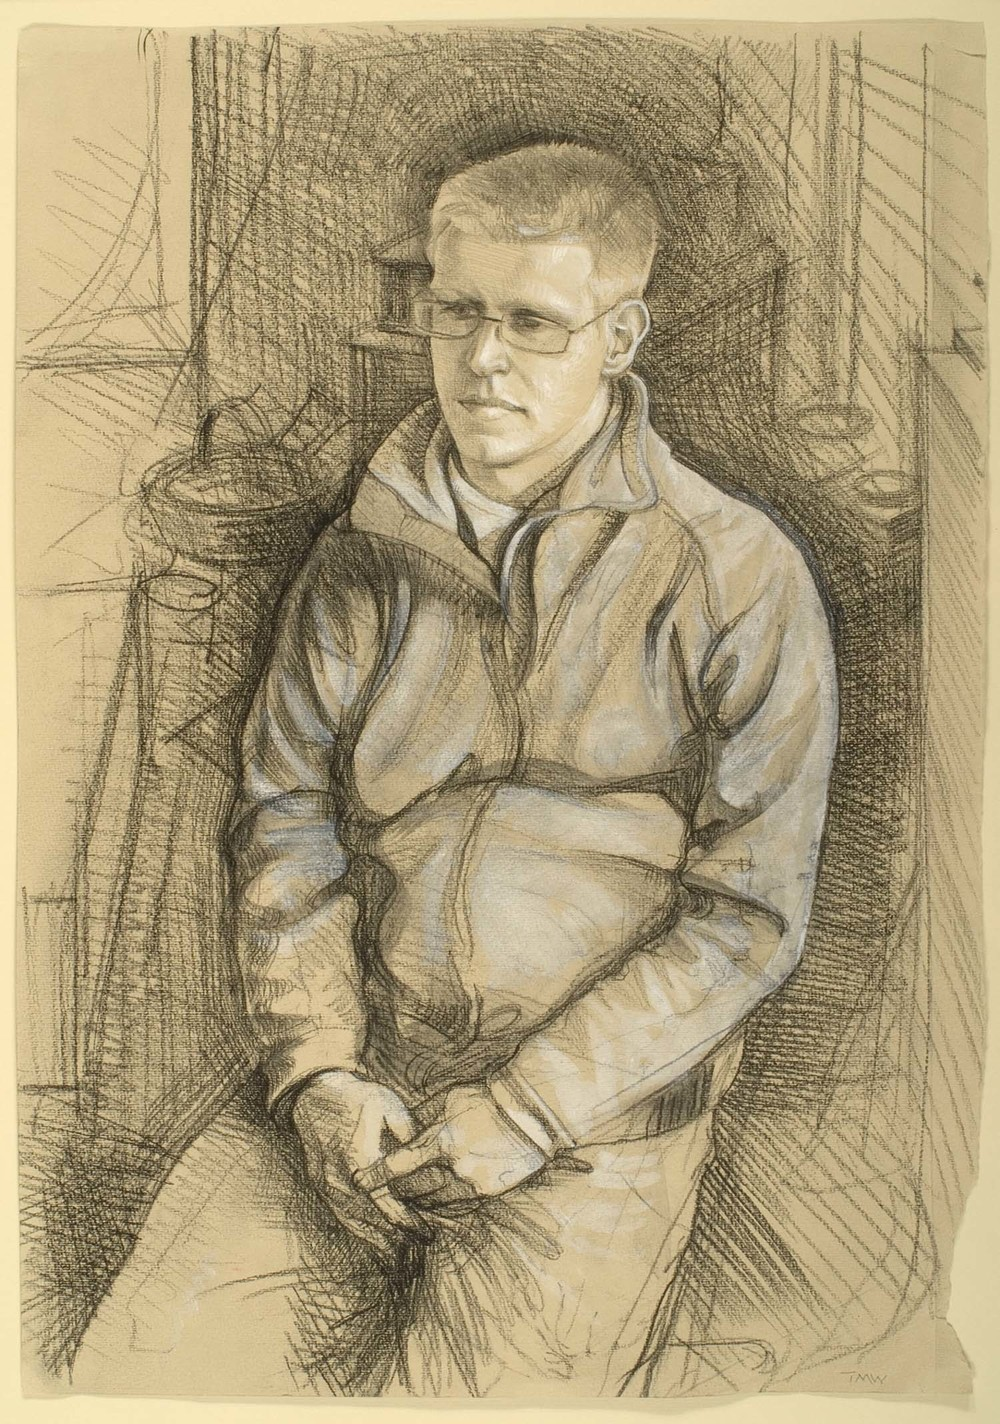 "'Jamie Hall - farmer's son, Isle of Purbeck, Dorset' 50x35cm(19 ¾""x13 ¾"") pencil on paper."